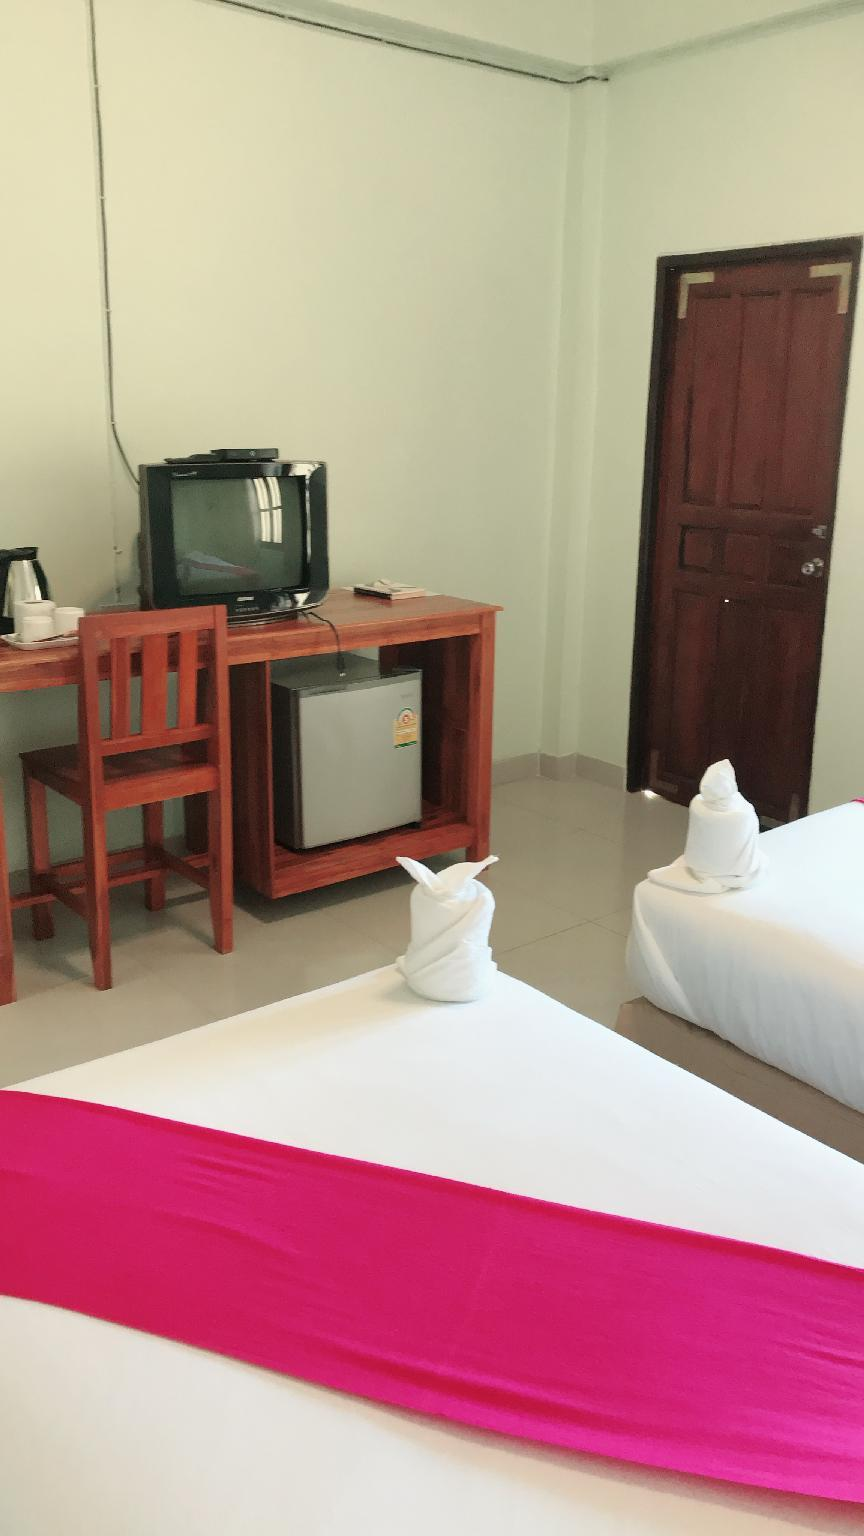 NAMSOMGUESTHOUSE Reviews